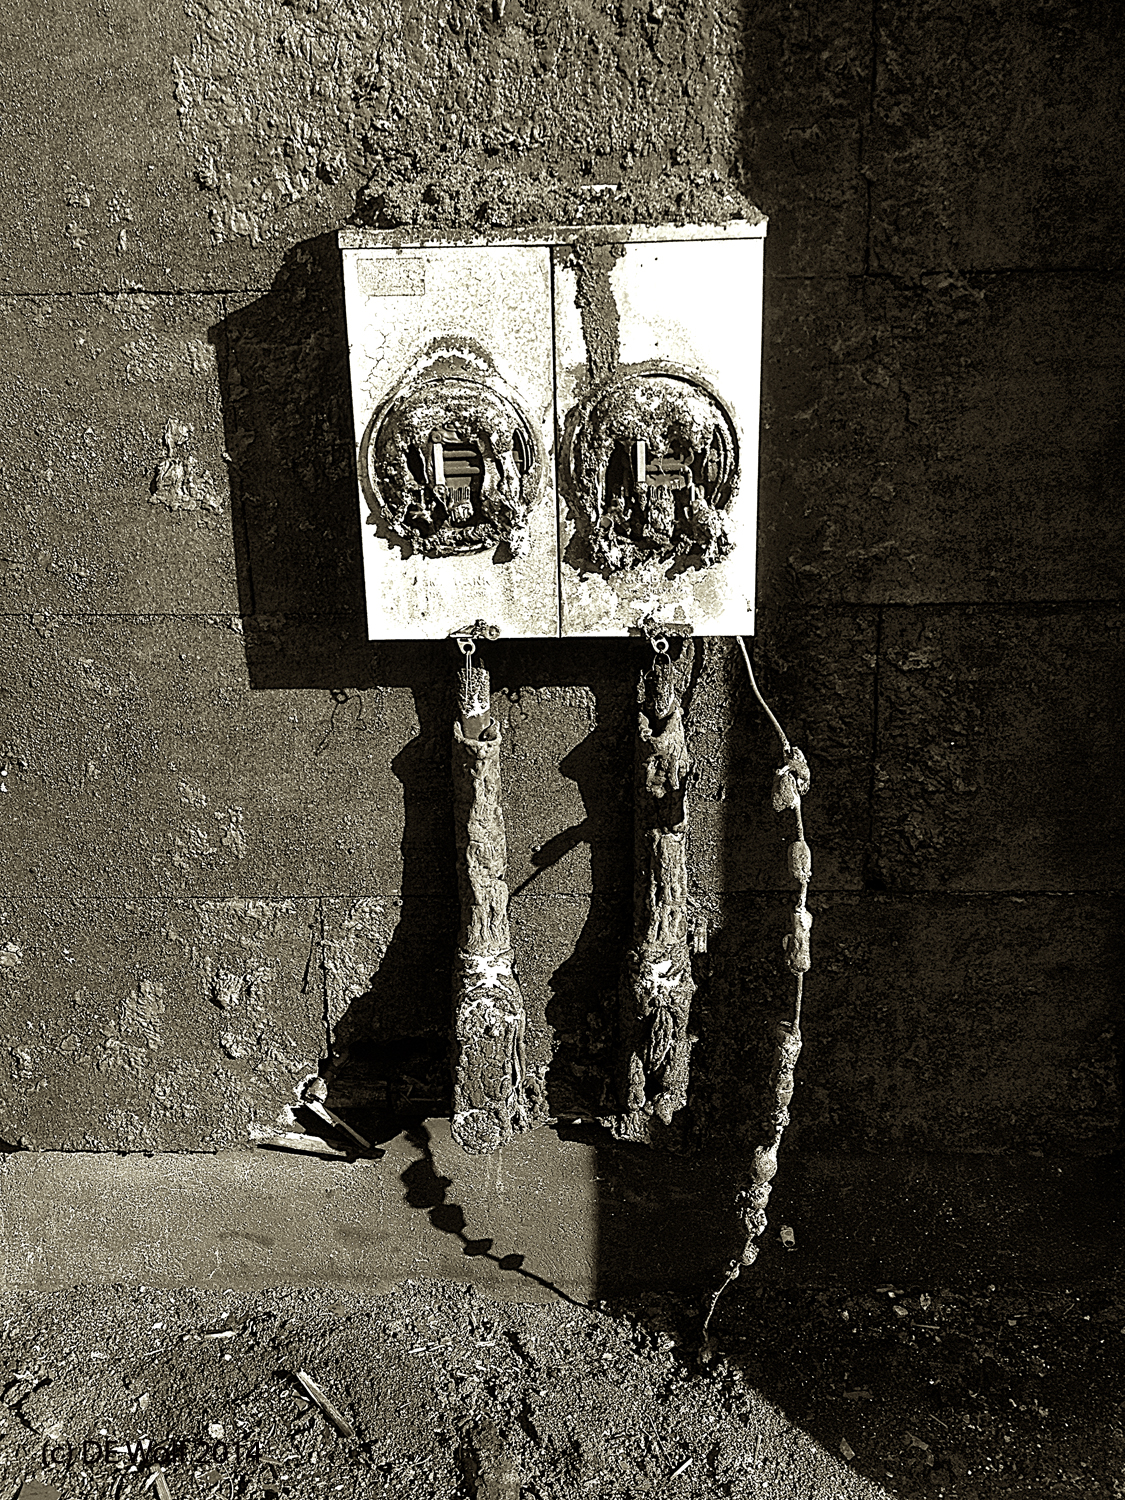 Figure 1 - Burned out meters at 88 Galen Street, Watertown, MA, IPhone photograph. (c) DE Wolf 2014.